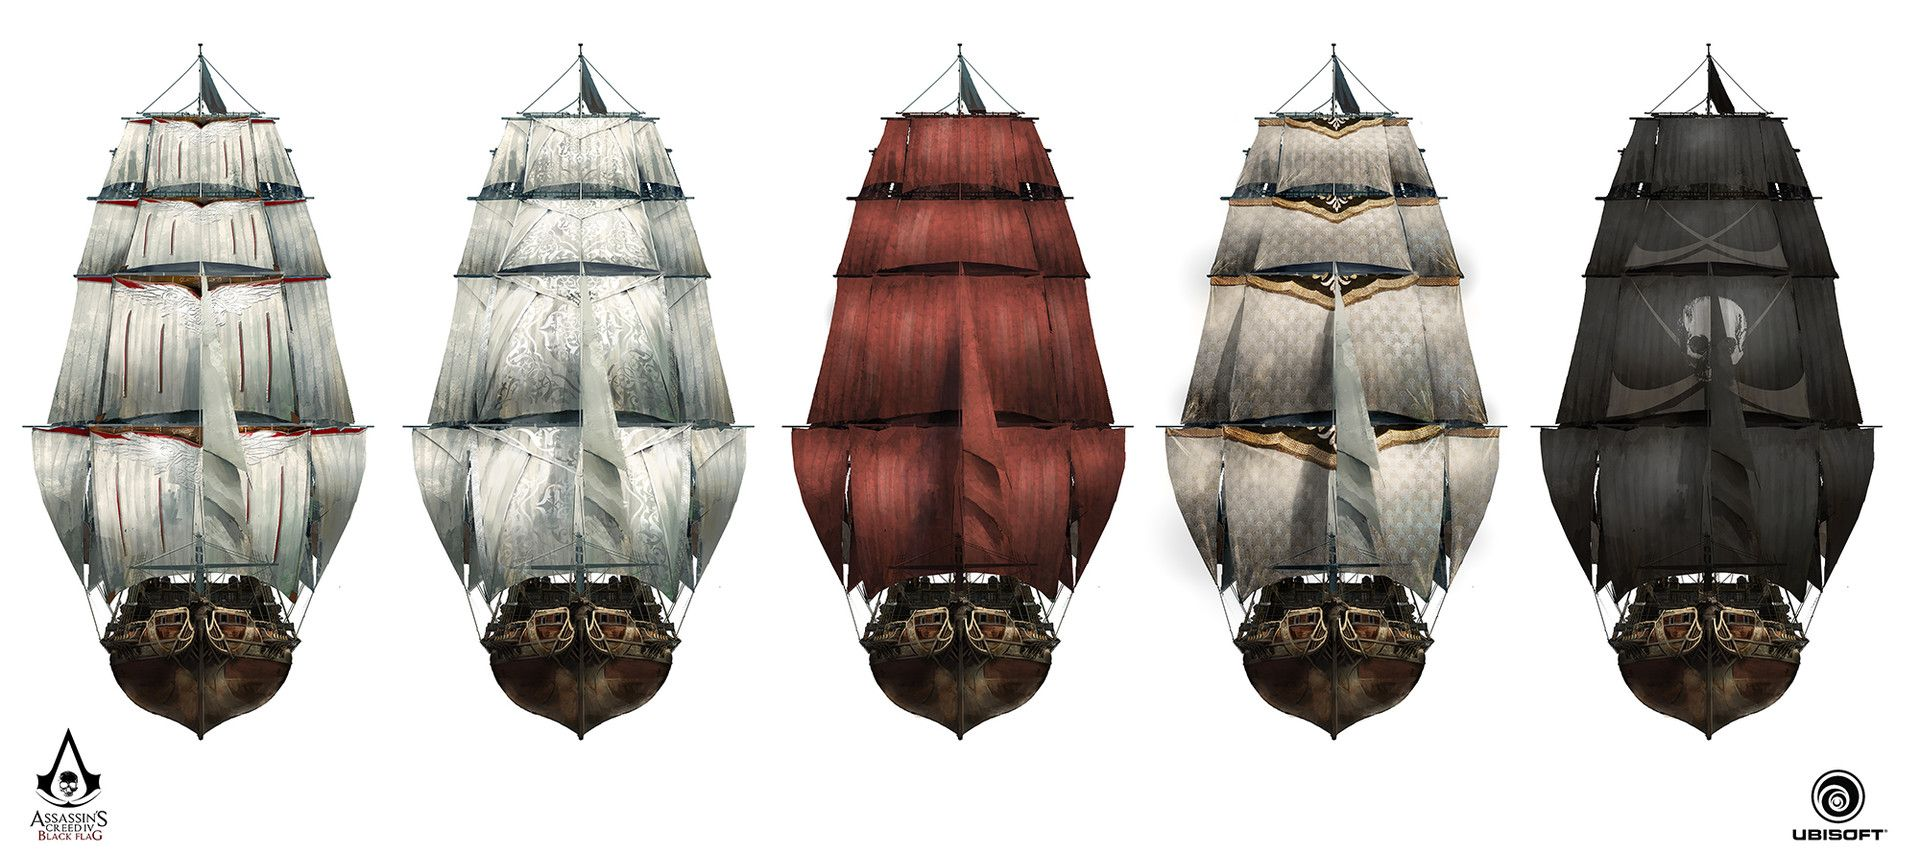 Assassin S Creed Iv Black Flag Jackdaw And The Rouge Design